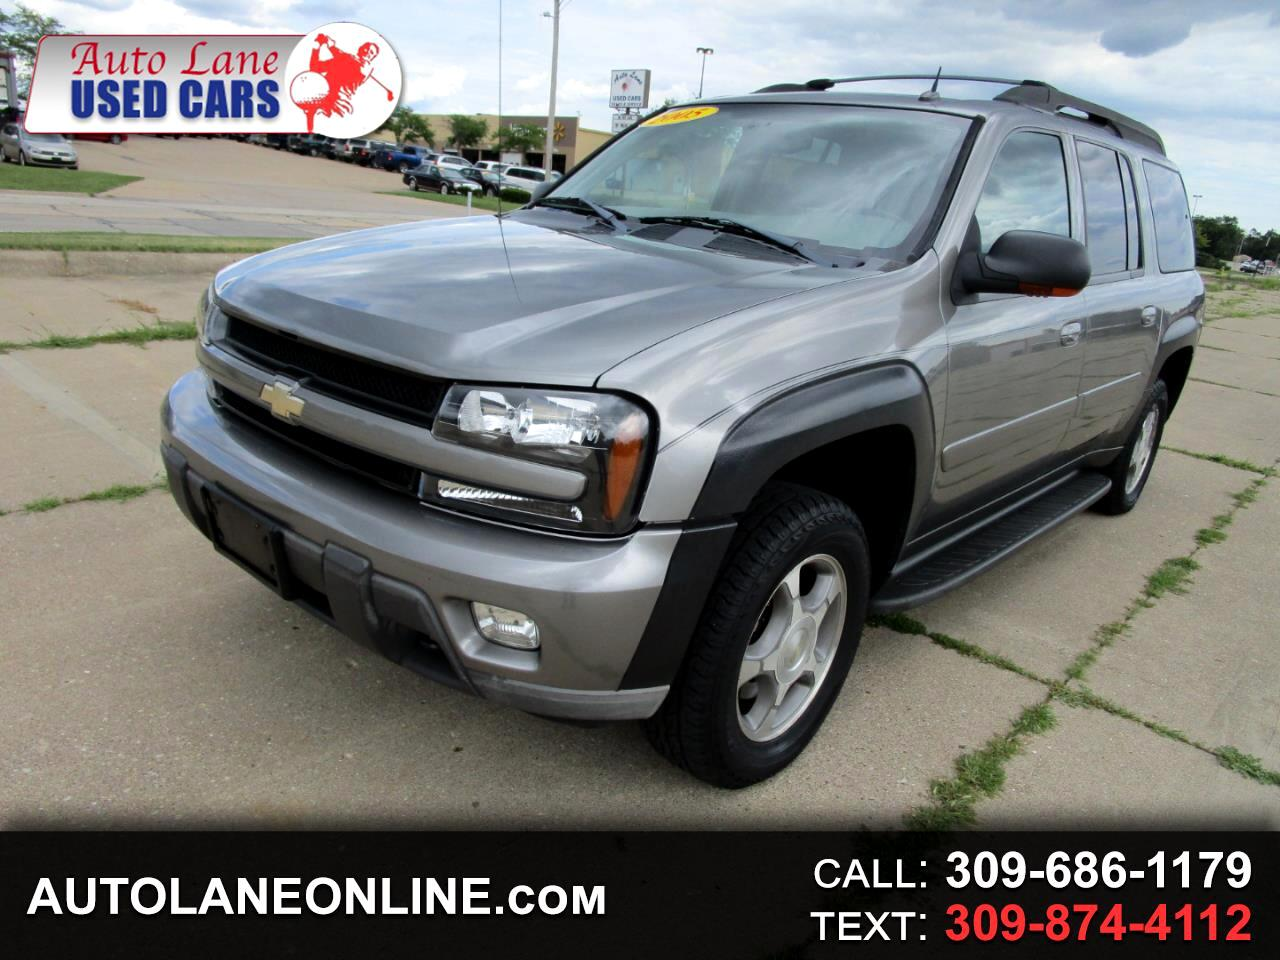 Chevrolet TrailBlazer 4dr 4WD EXT LT 2005